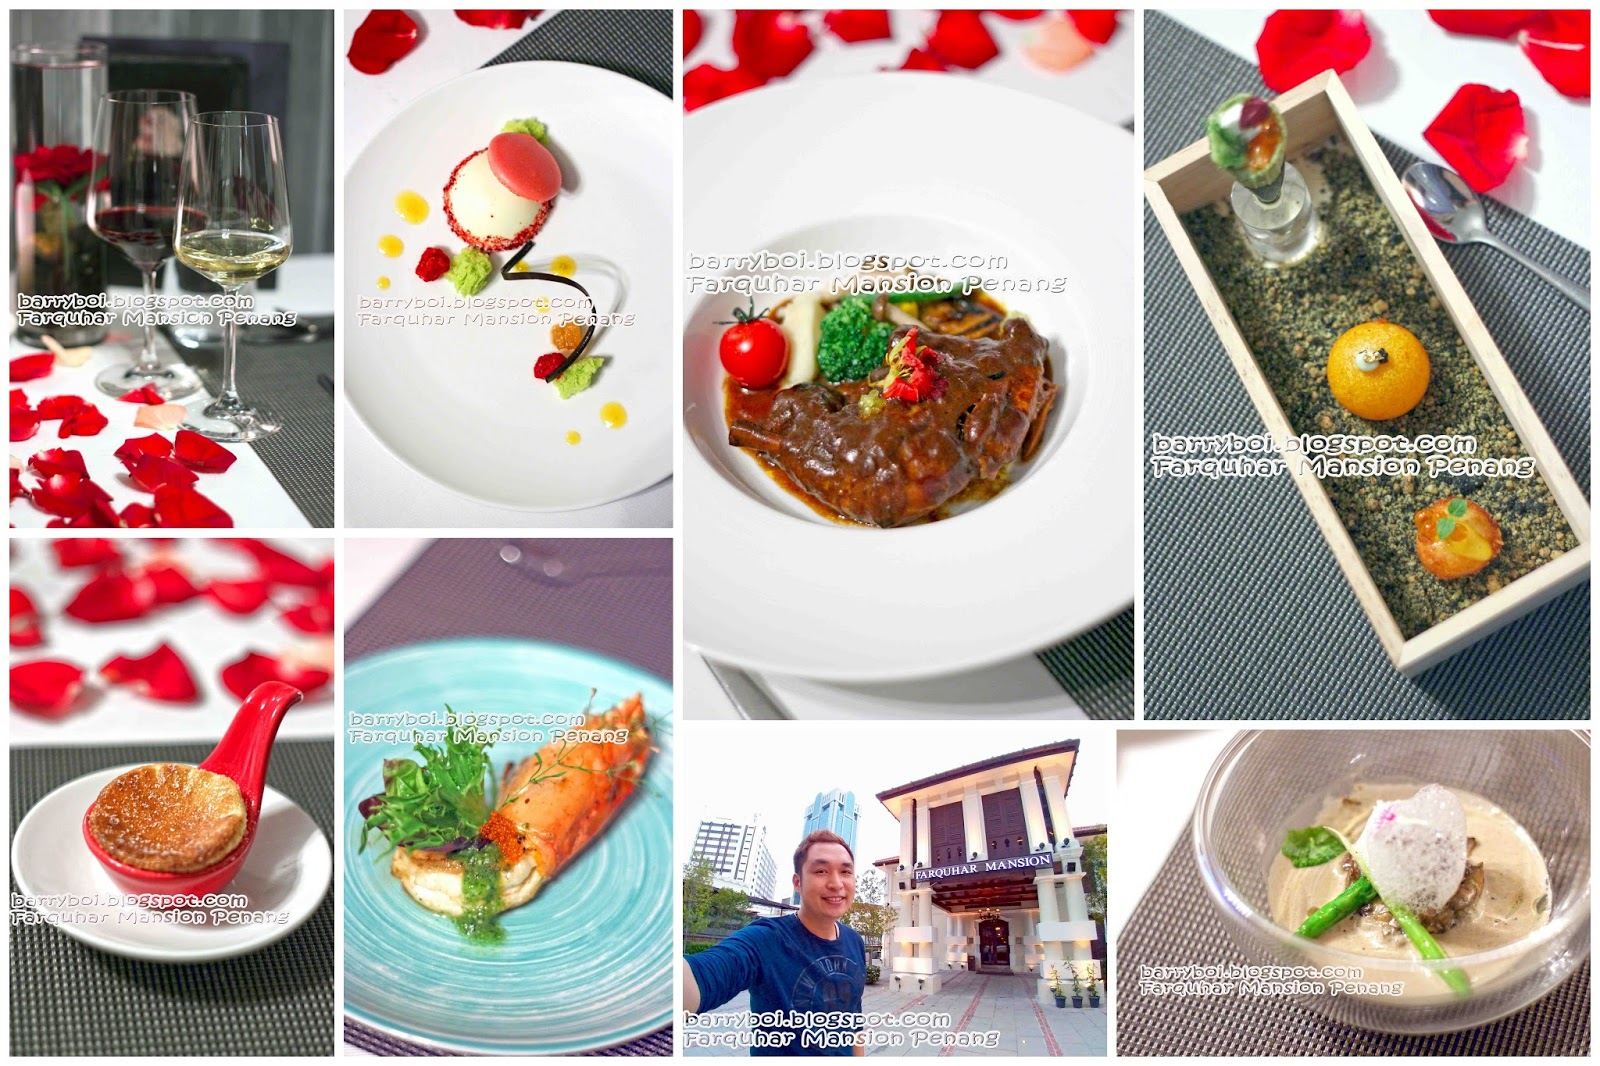 Daily Moments By Barryboi Farquhar Mansion Penang The Luxury Of Fine Dining More